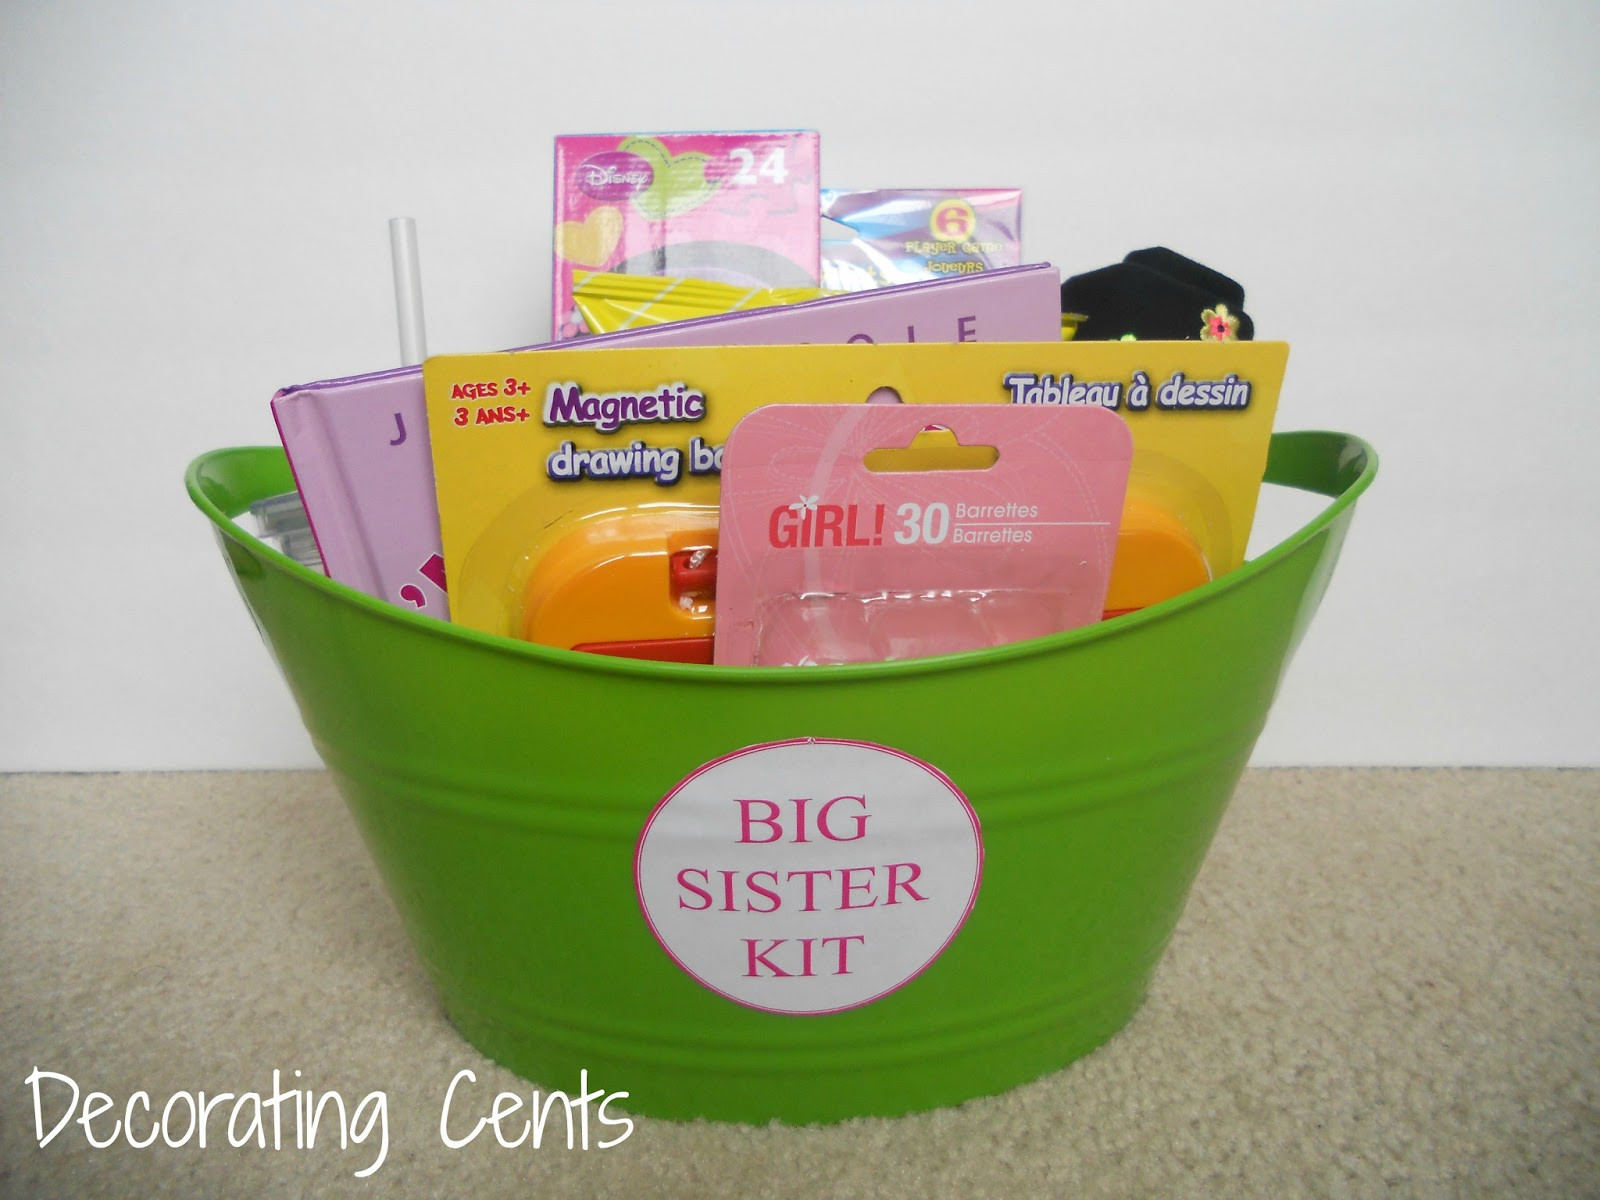 Big Sister Gift Ideas From New Baby  Decorating Cents Big Sister Kit